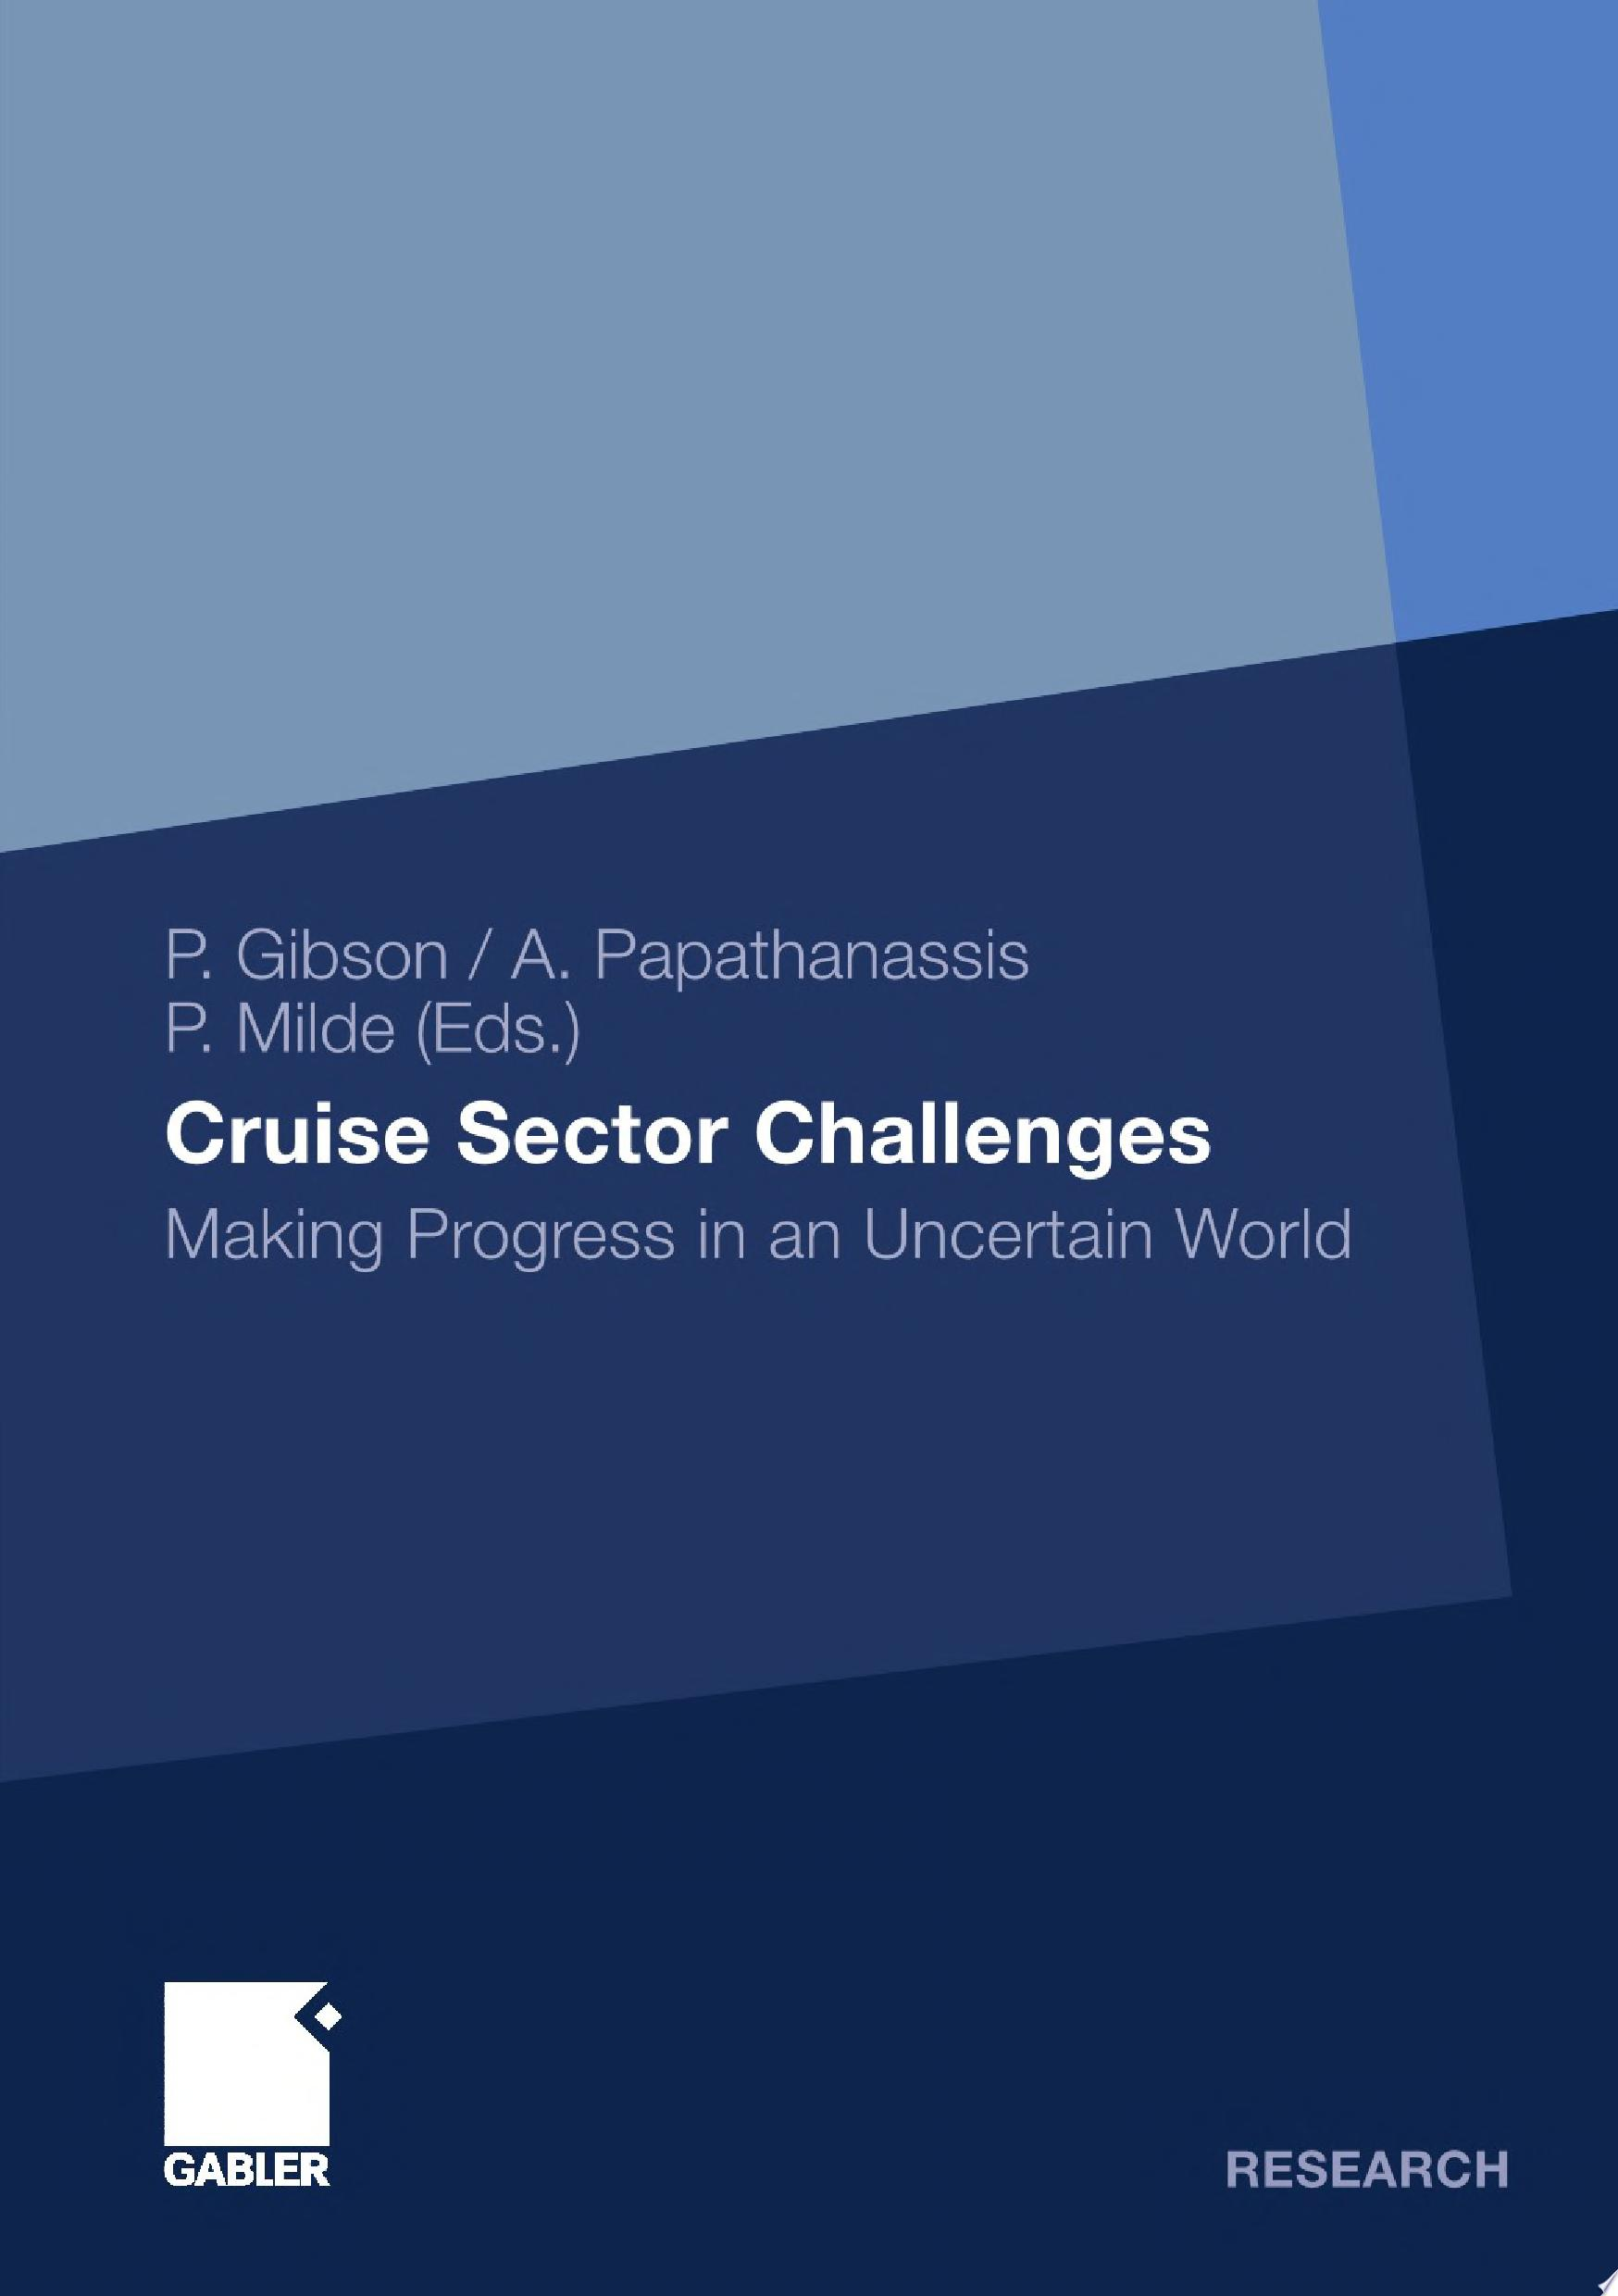 Cruise Sector Challenges